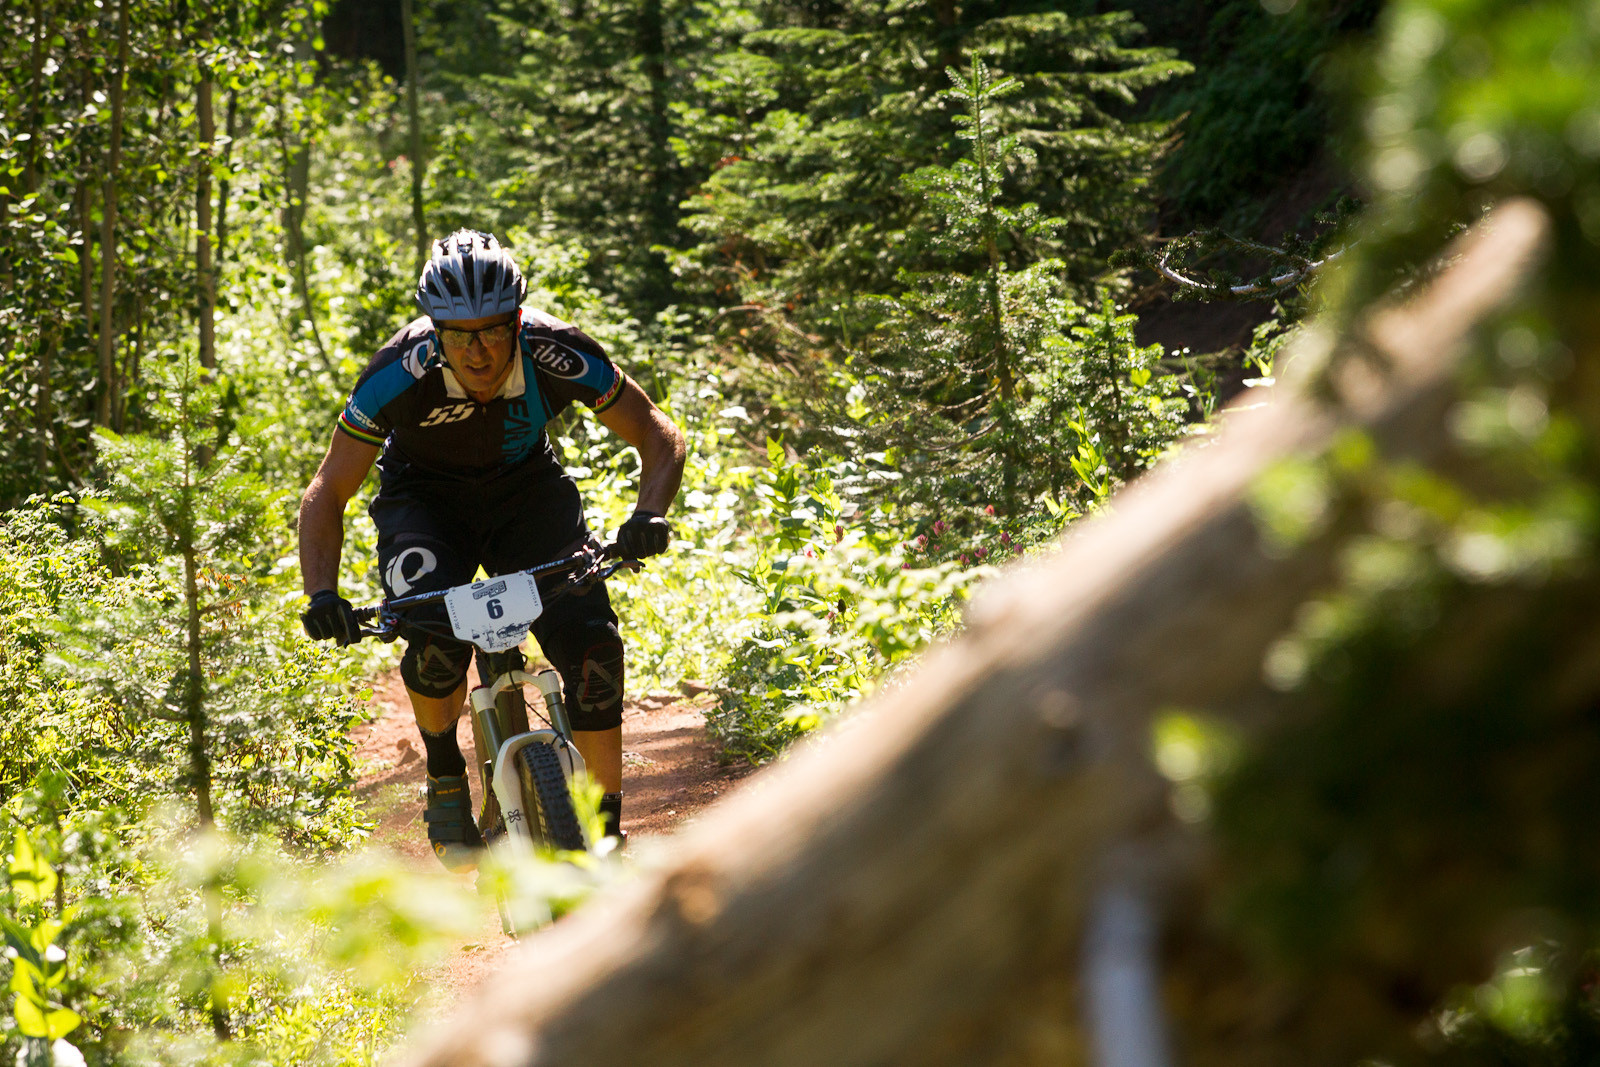 Brian Lopes, 2nd Place, Bell Enduro Cup at Canyons Resort - Race Report, Photos and Video: Bell Enduro Cup at Canyons Resort - Mountain Biking Pictures - Vital MTB